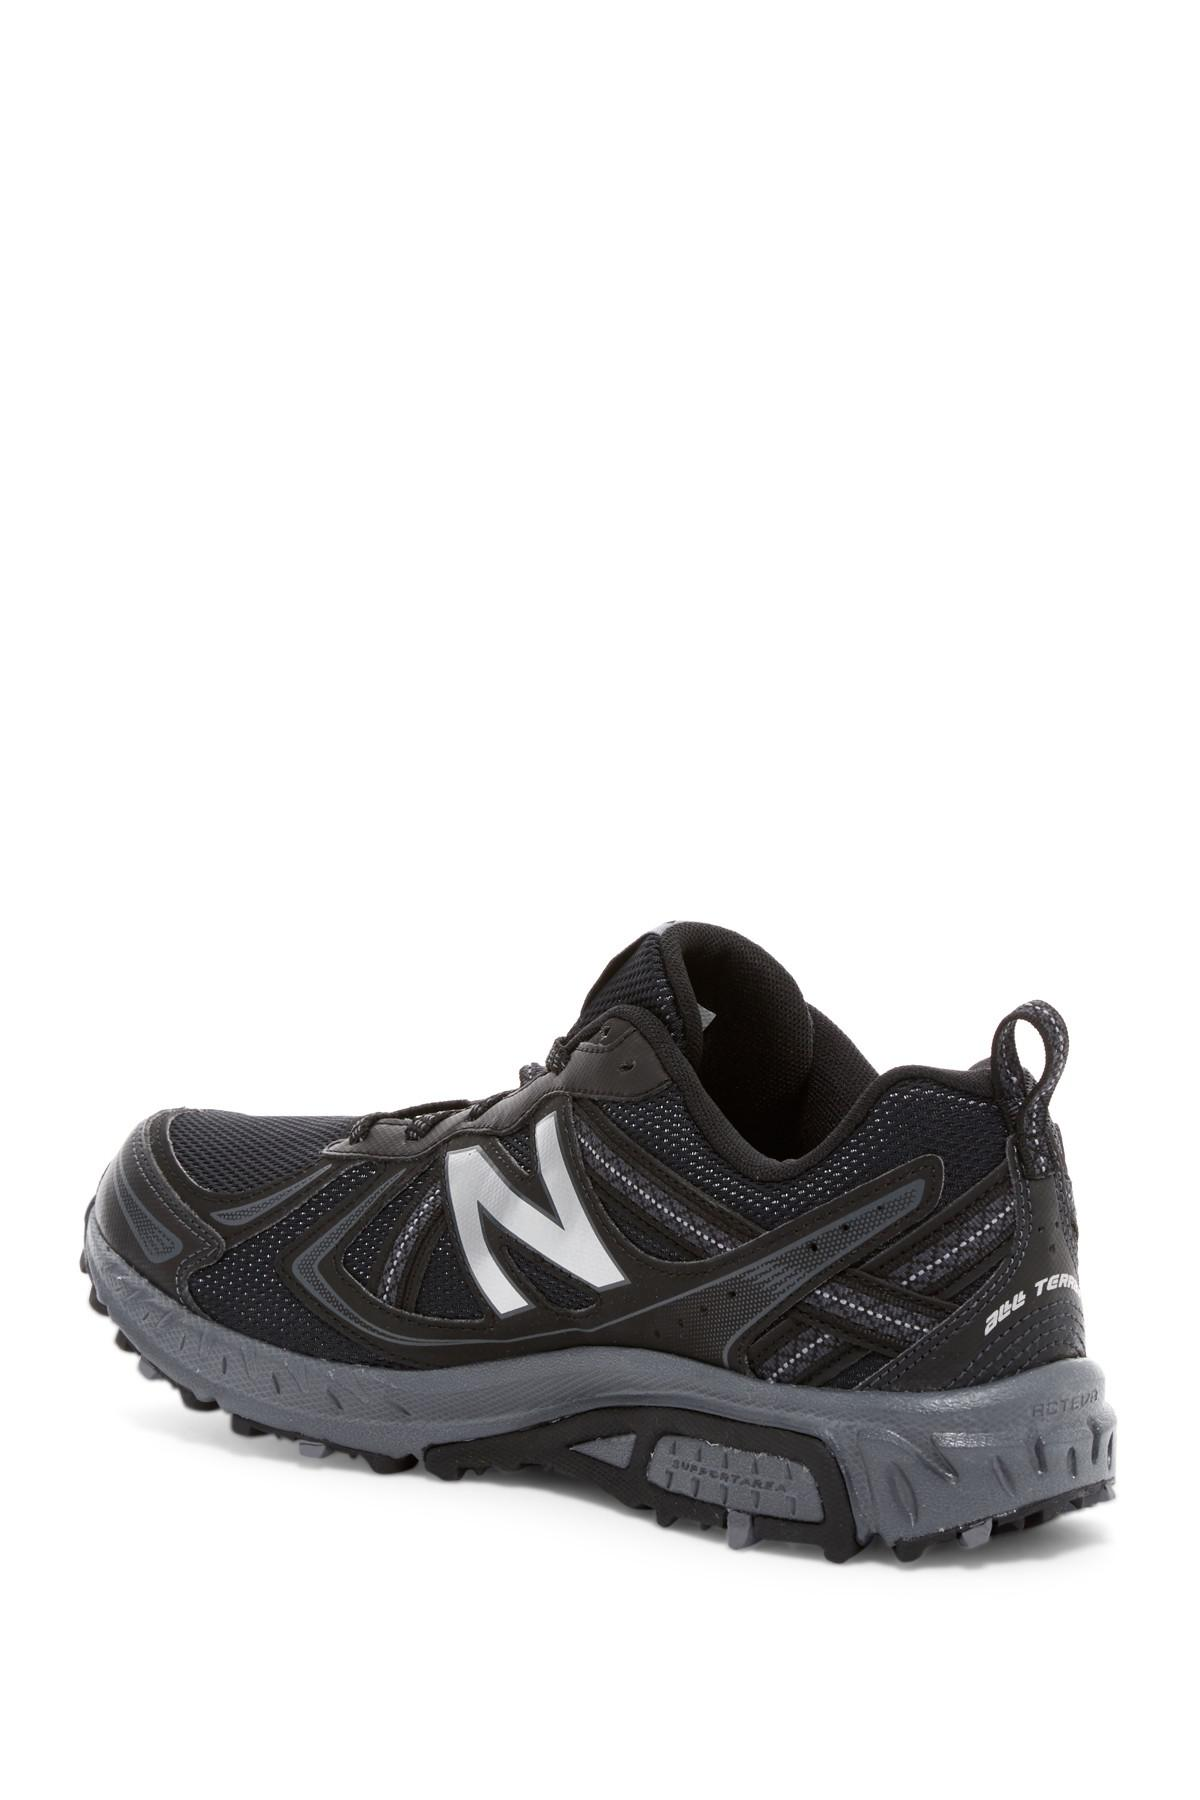 new product 86182 ba250 Men's Black 410v5 Trail Running Shoe - Extra Wide Width Available